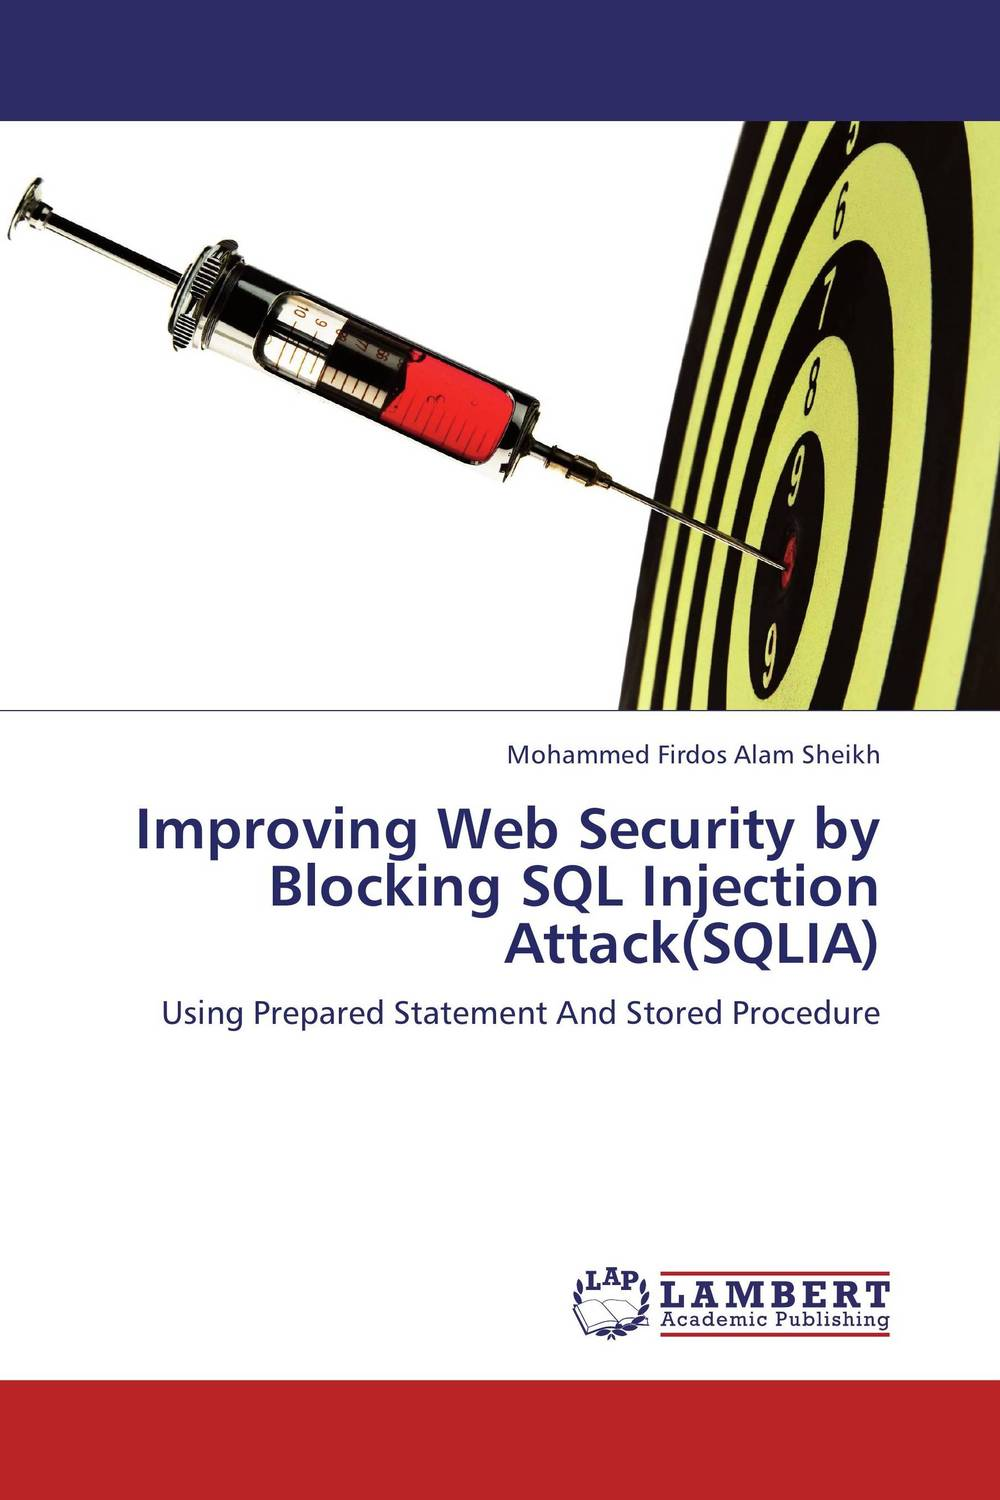 Improving Web Security by Blocking SQL Injection Attack(SQLIA) oracie sql